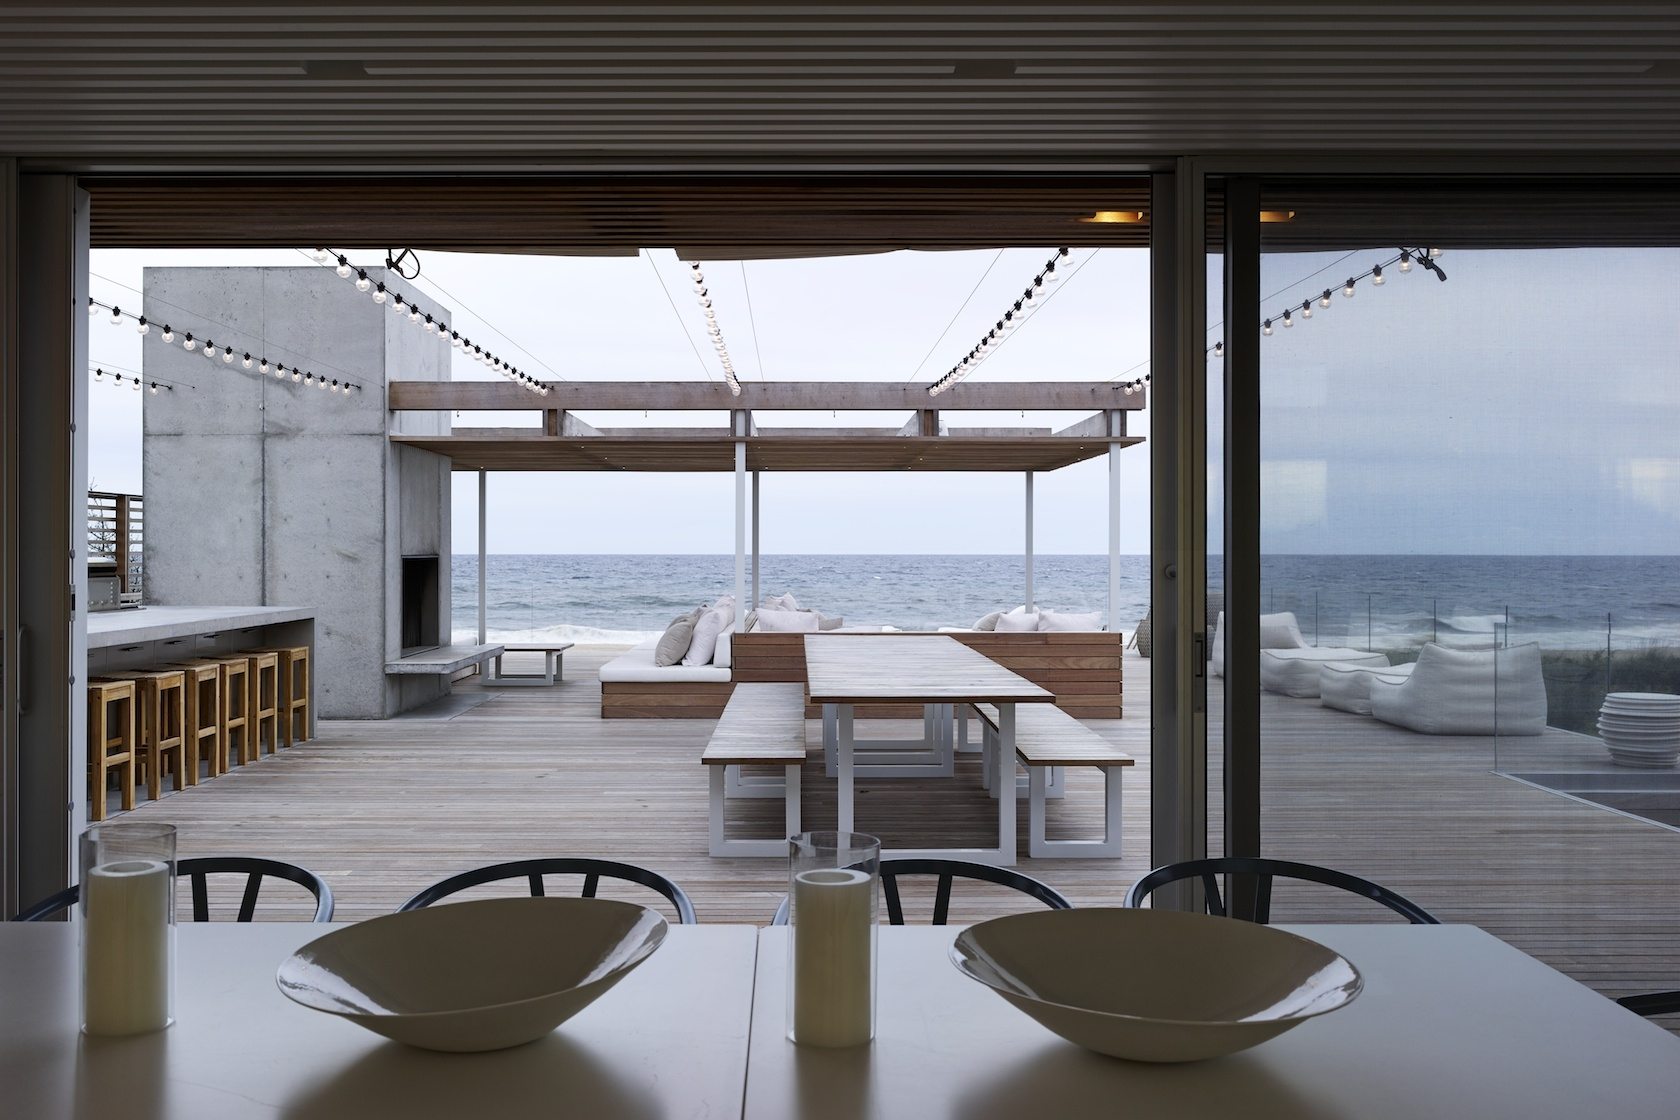 Bridgehampton, NY modern house deck overlooking ocean